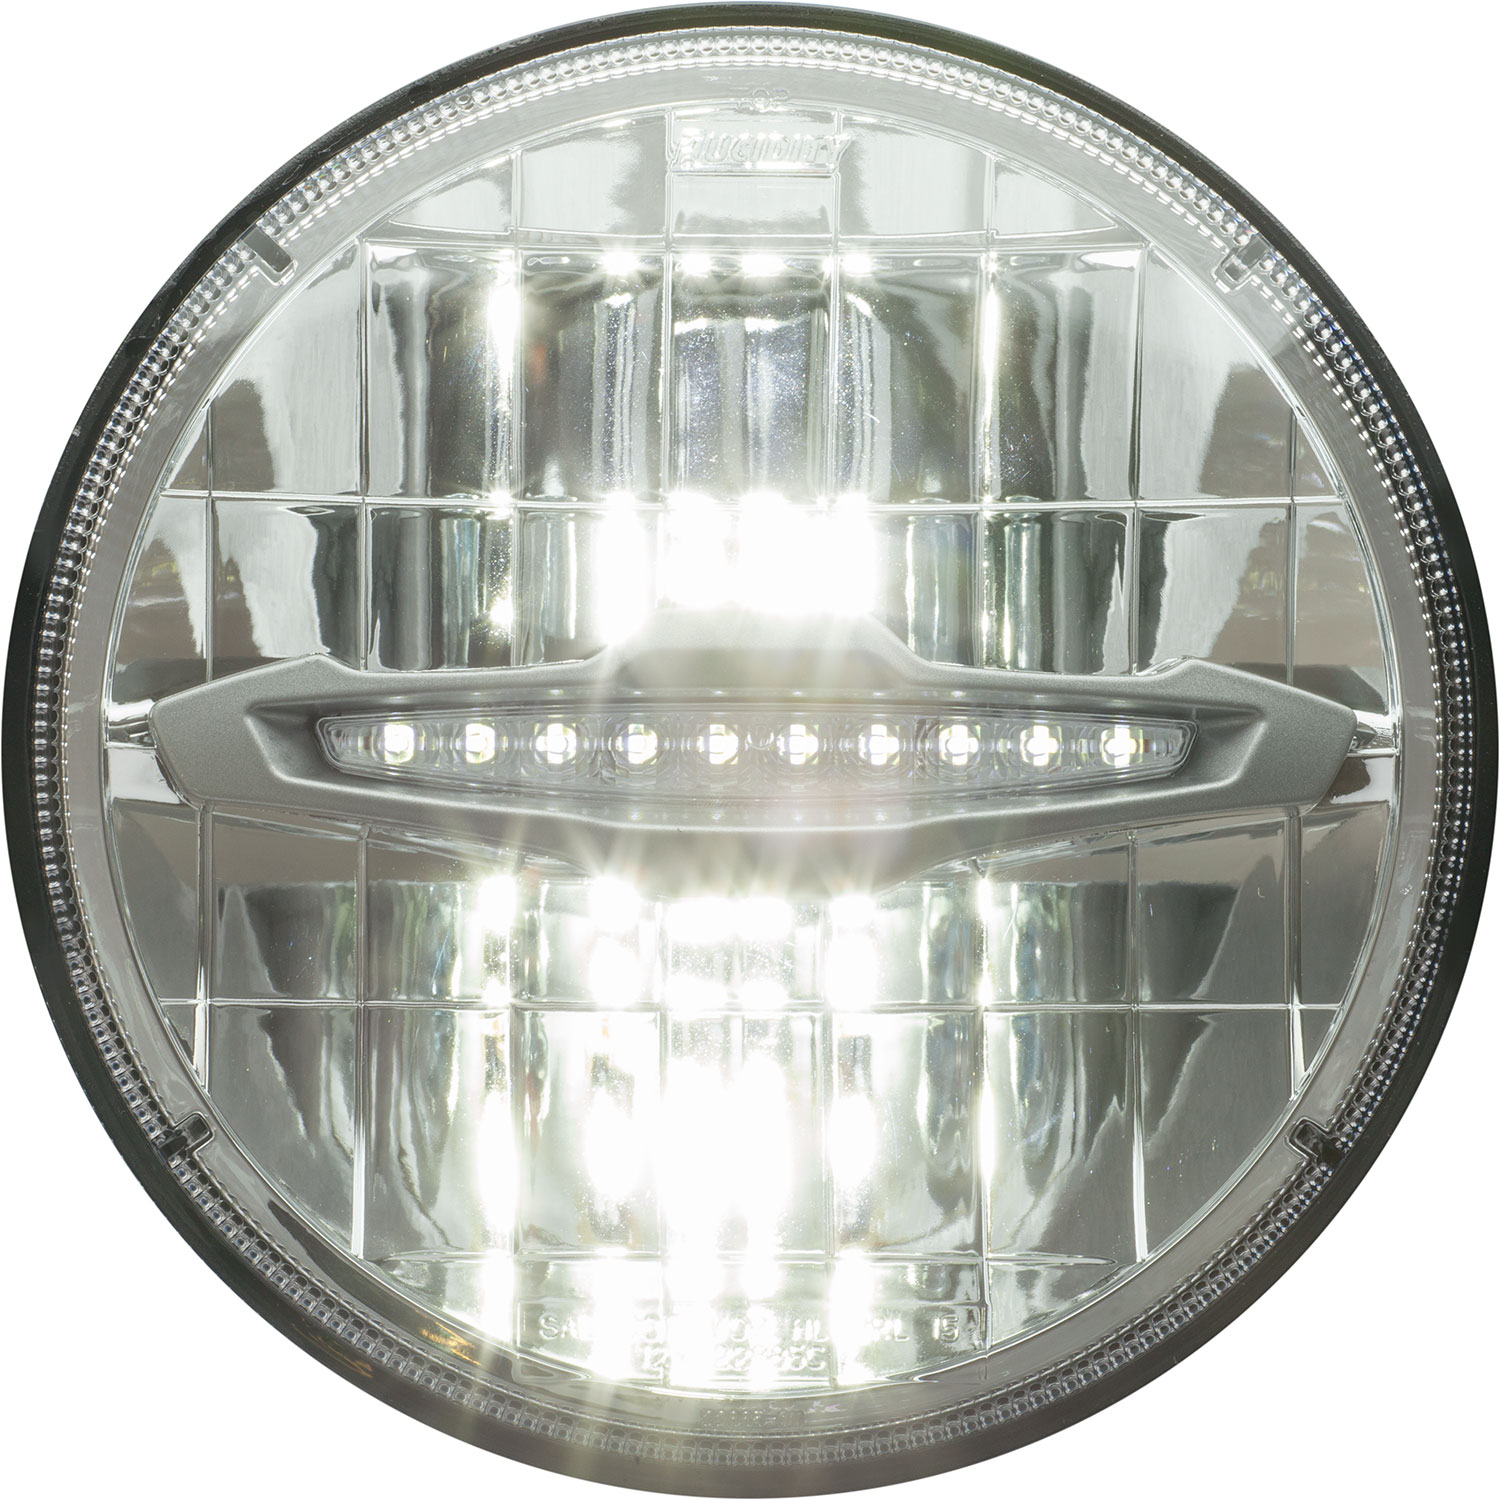 optronics-opti-brite-led-headlamp